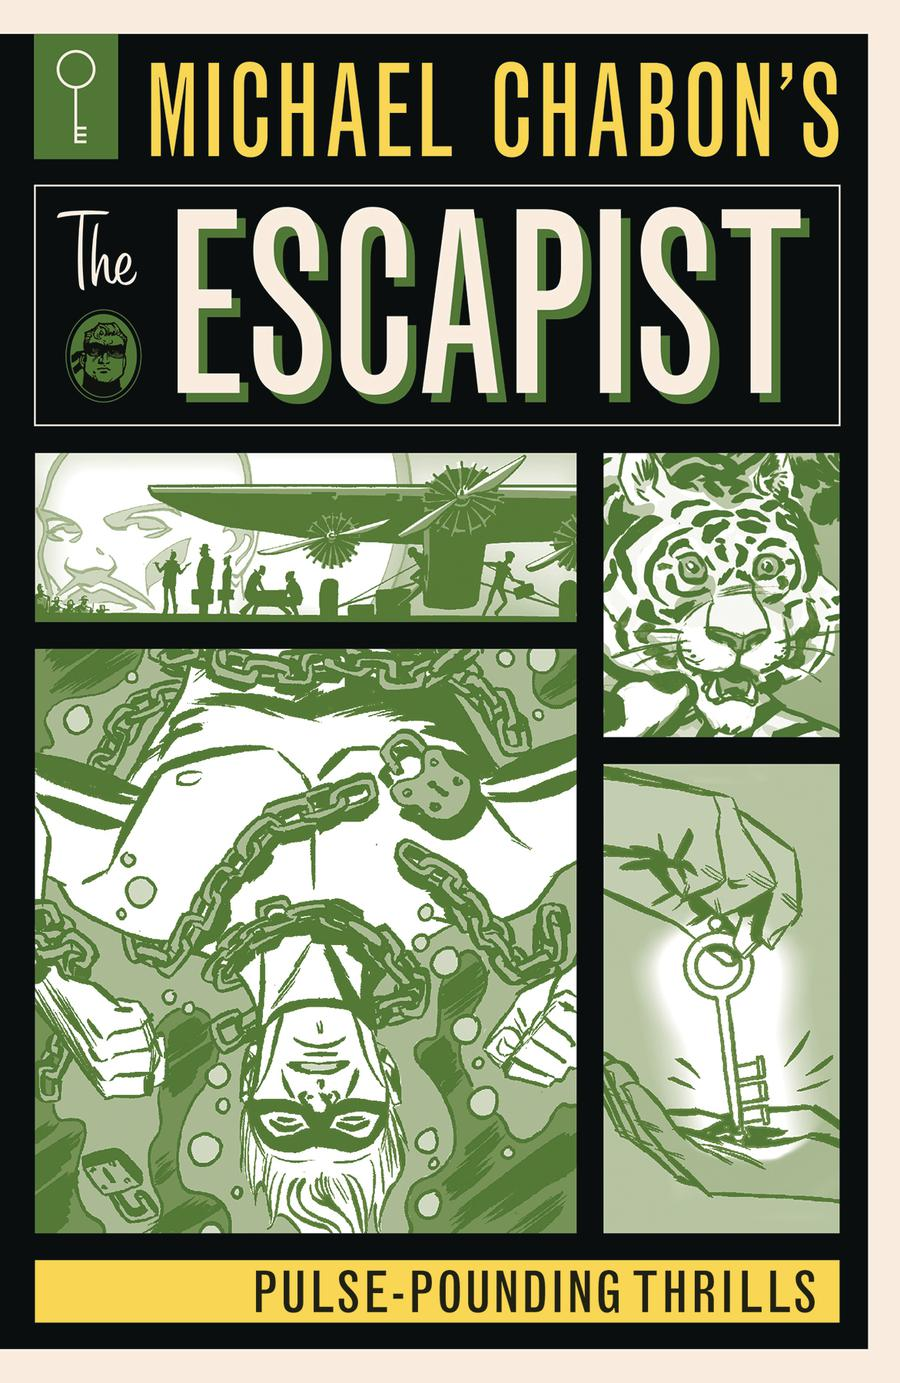 Michael Chabons The Escapist Pulse-Pounding Thrills TP